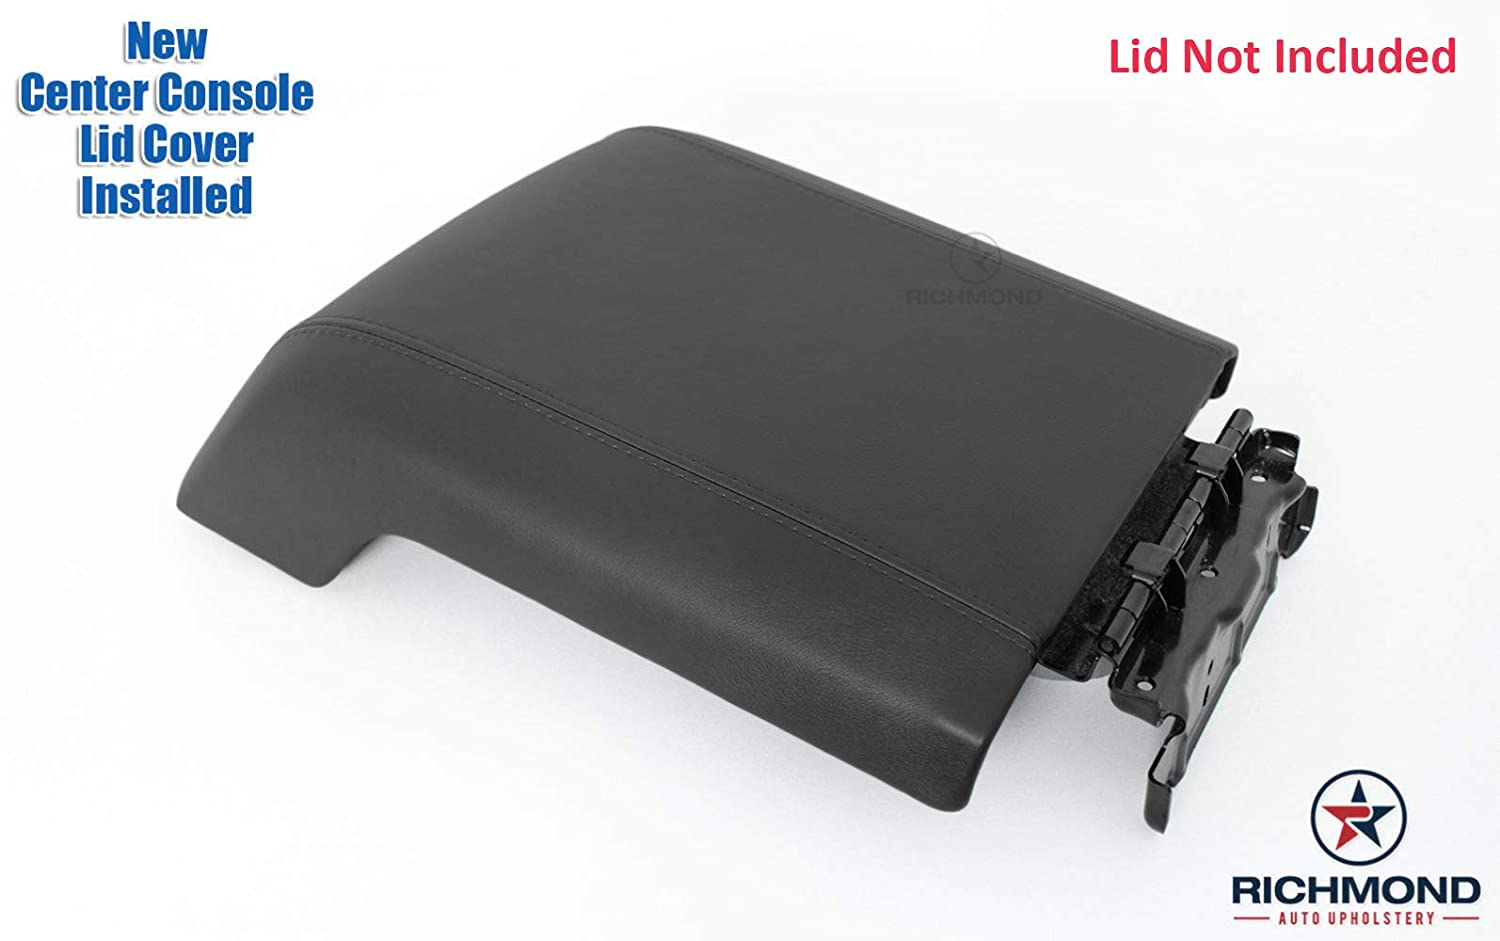 Center Console Lid Replacement Cover Compatible with 2014 Ford F-250 F-350 Lariat Richmond Auto Upholstery Black